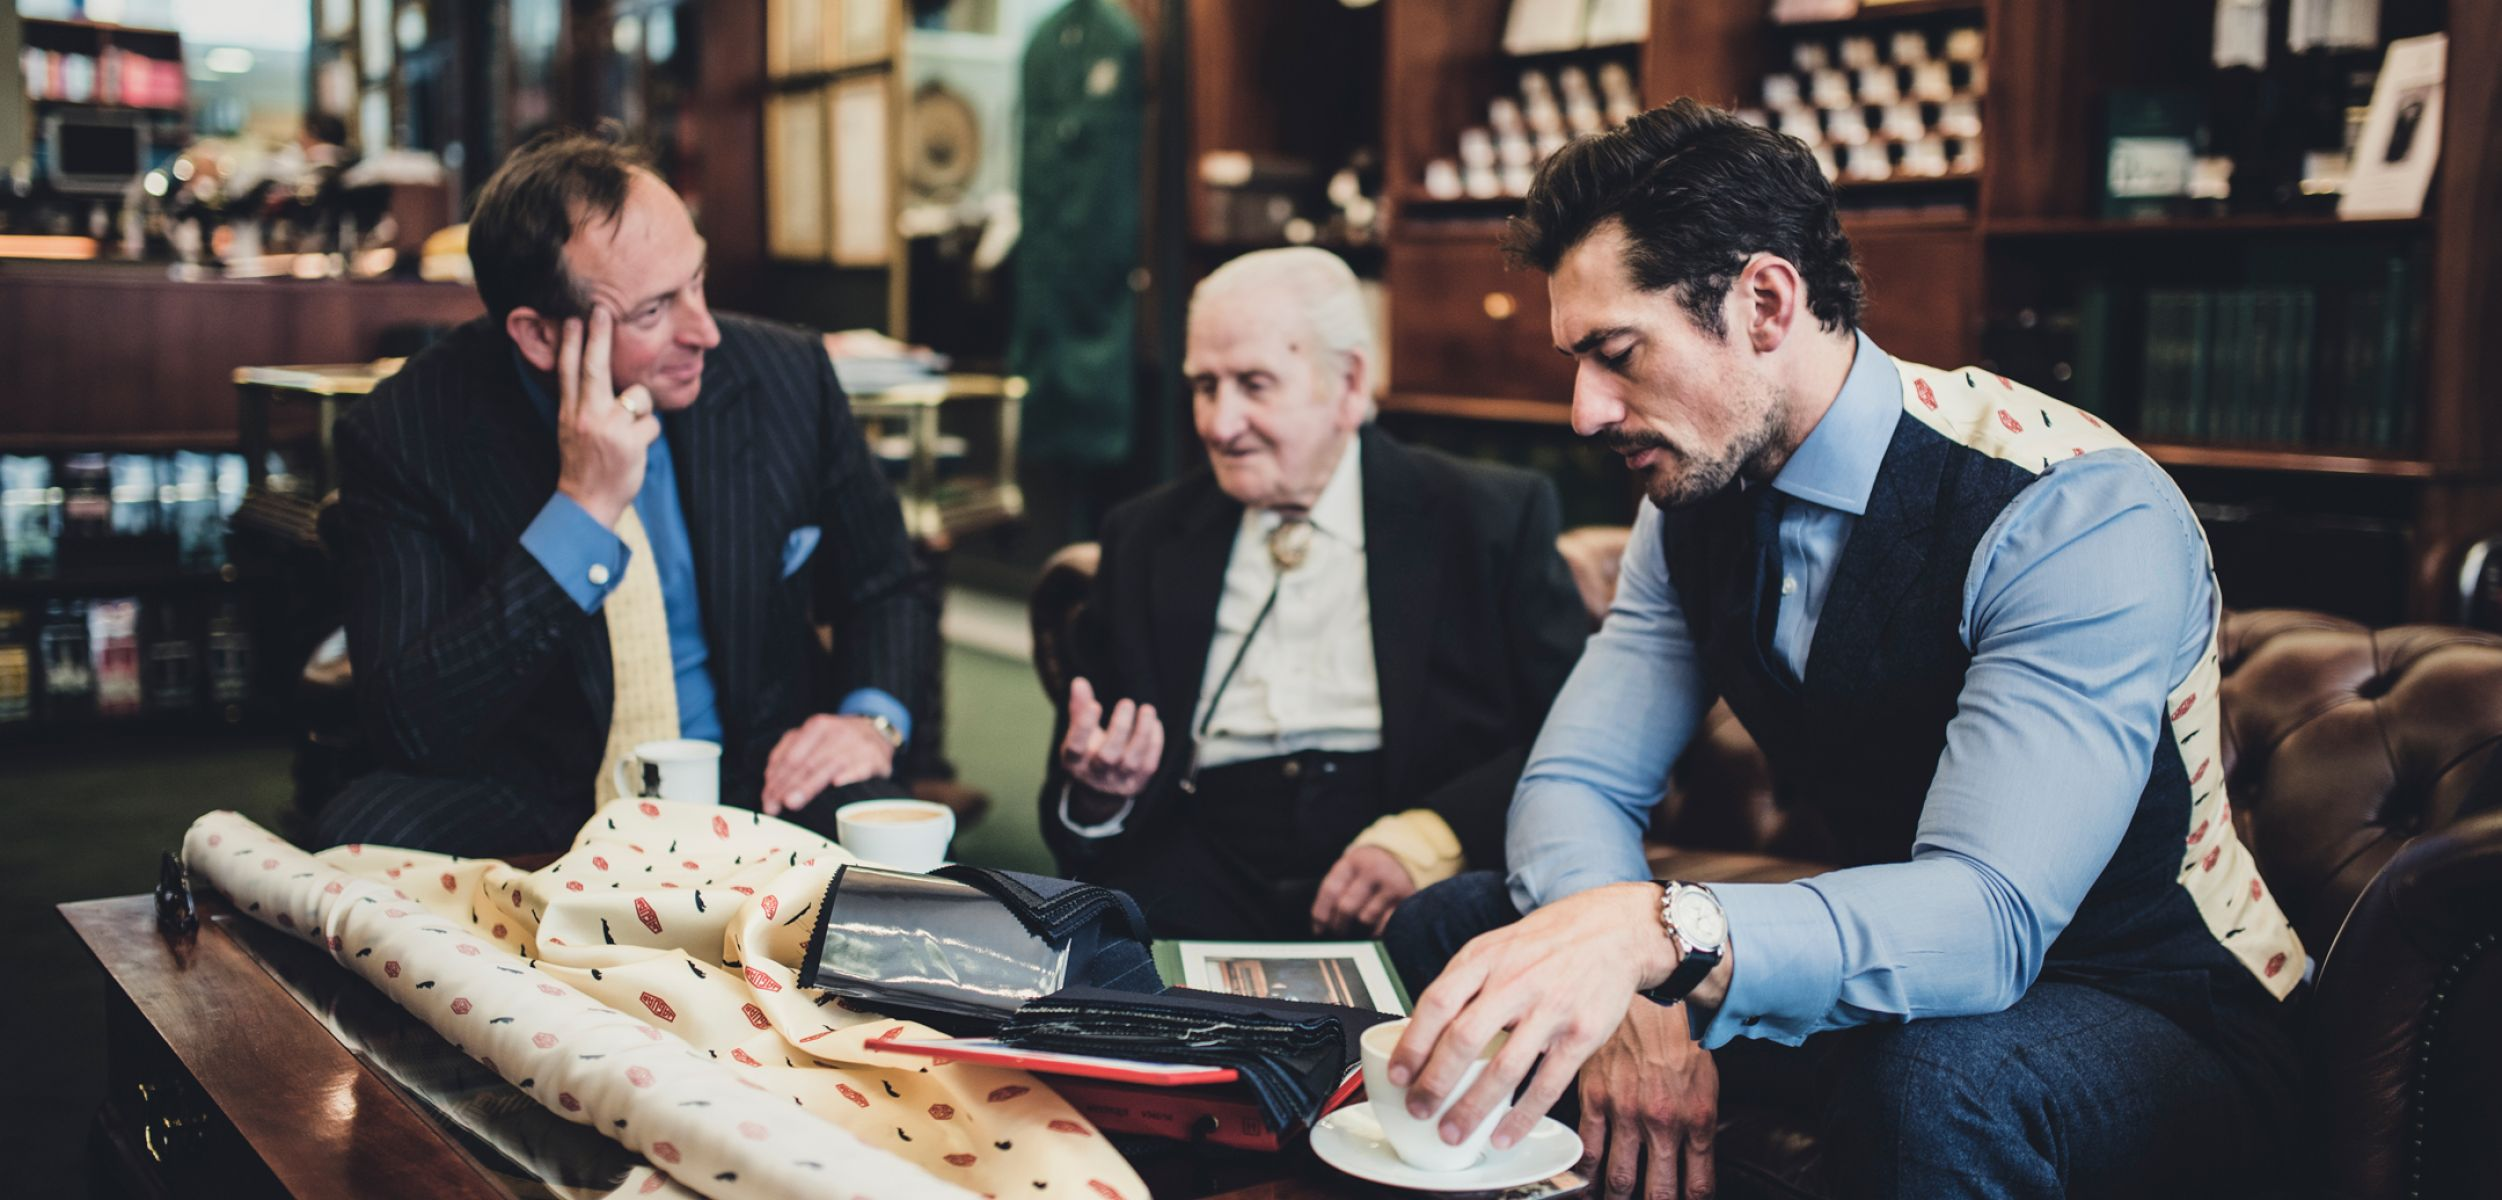 Inside Henry Poole Norman Dewis OBE, David Gandy and Simon Cundey gather to look at fabrics